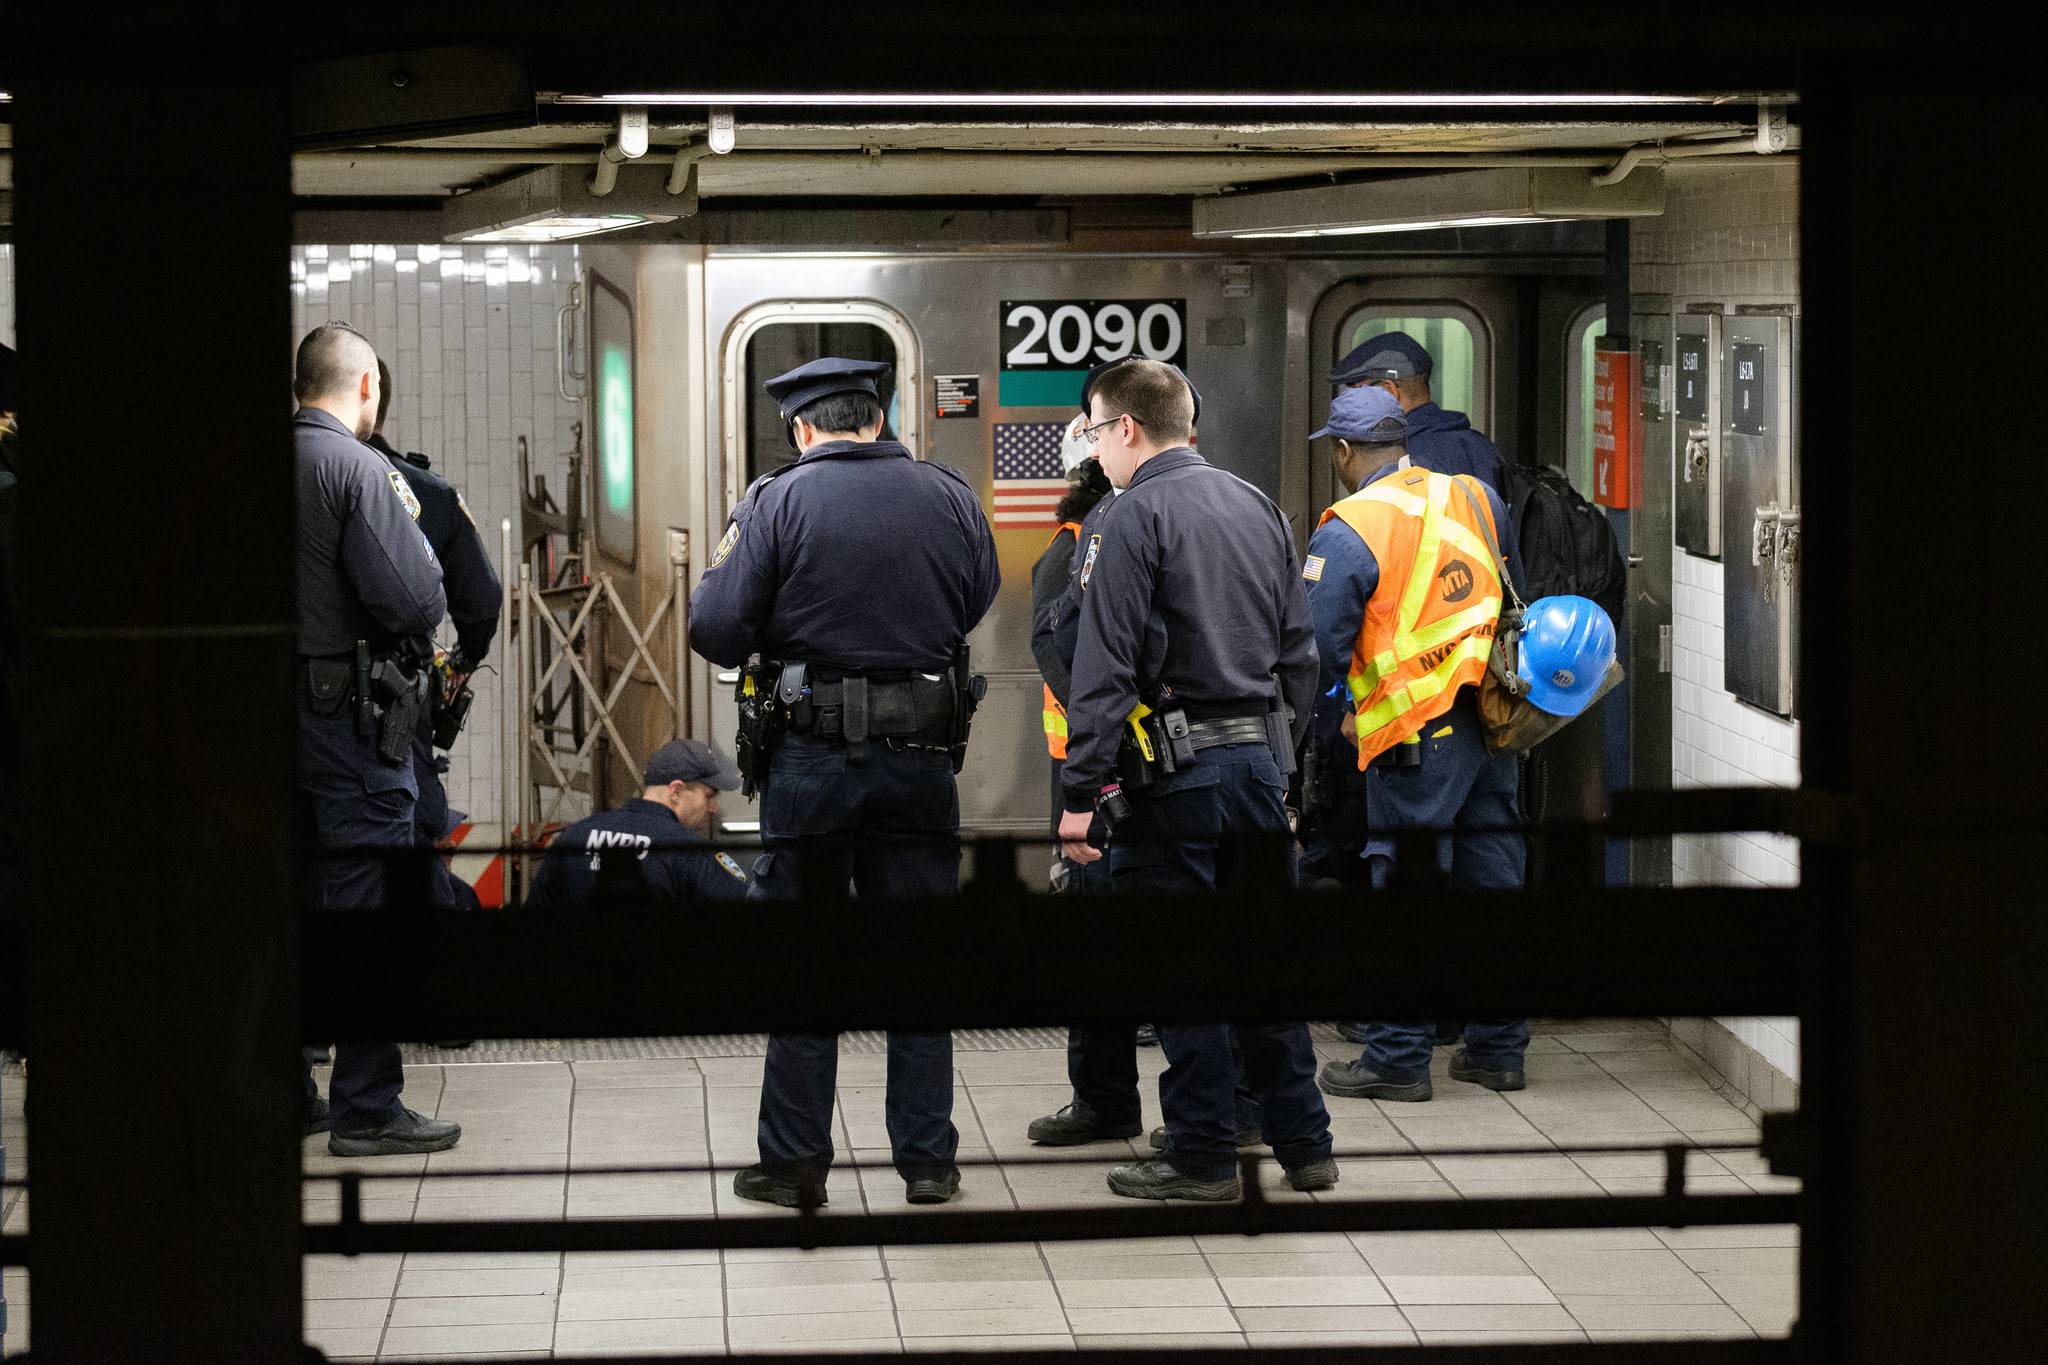 Man dies after jumping in front of subway train at NYC Union Square station